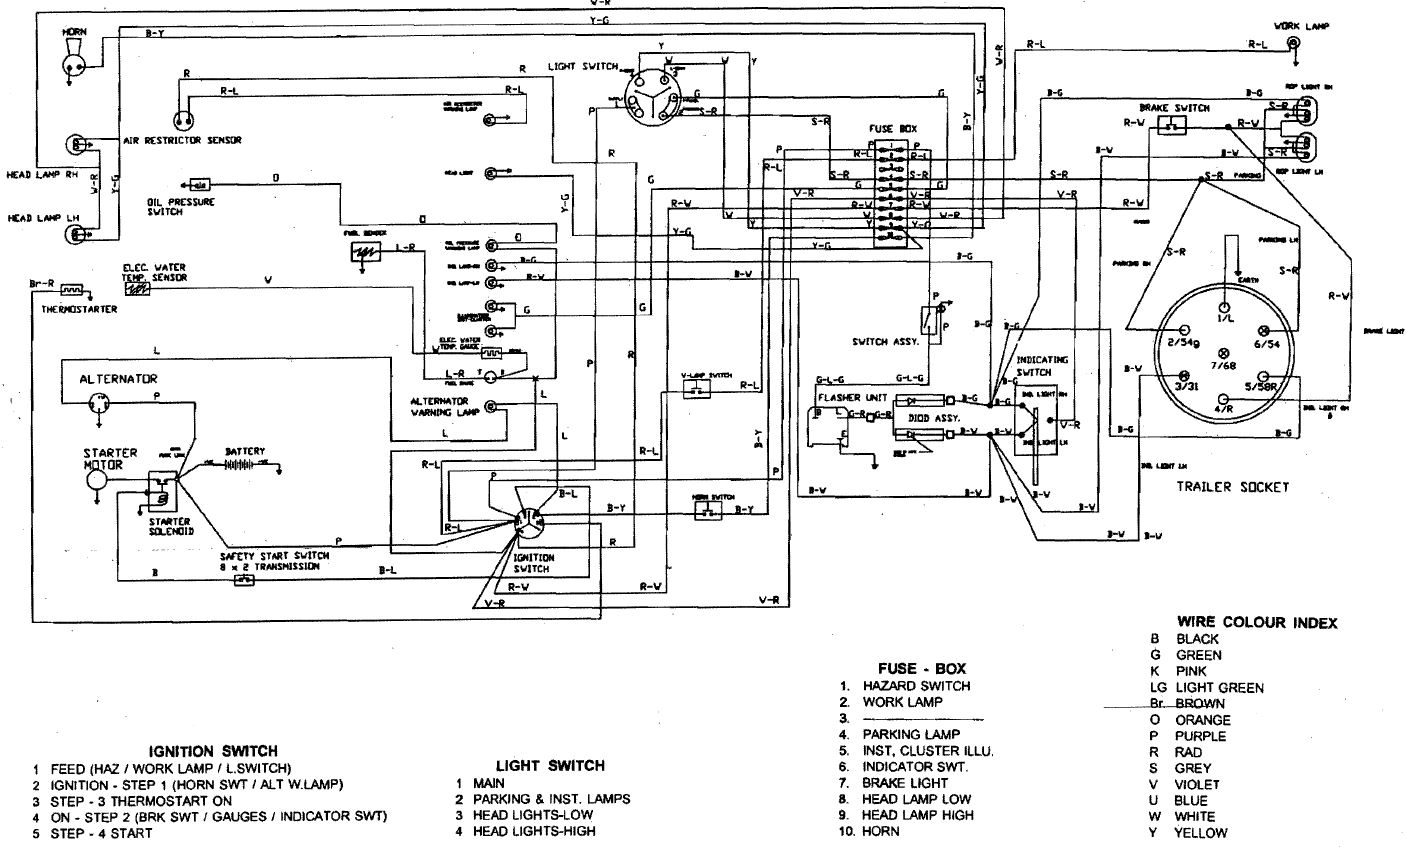 20158463319_b82d524c3d_o ignition switch wiring diagram john deere l100 wiring schematic at creativeand.co